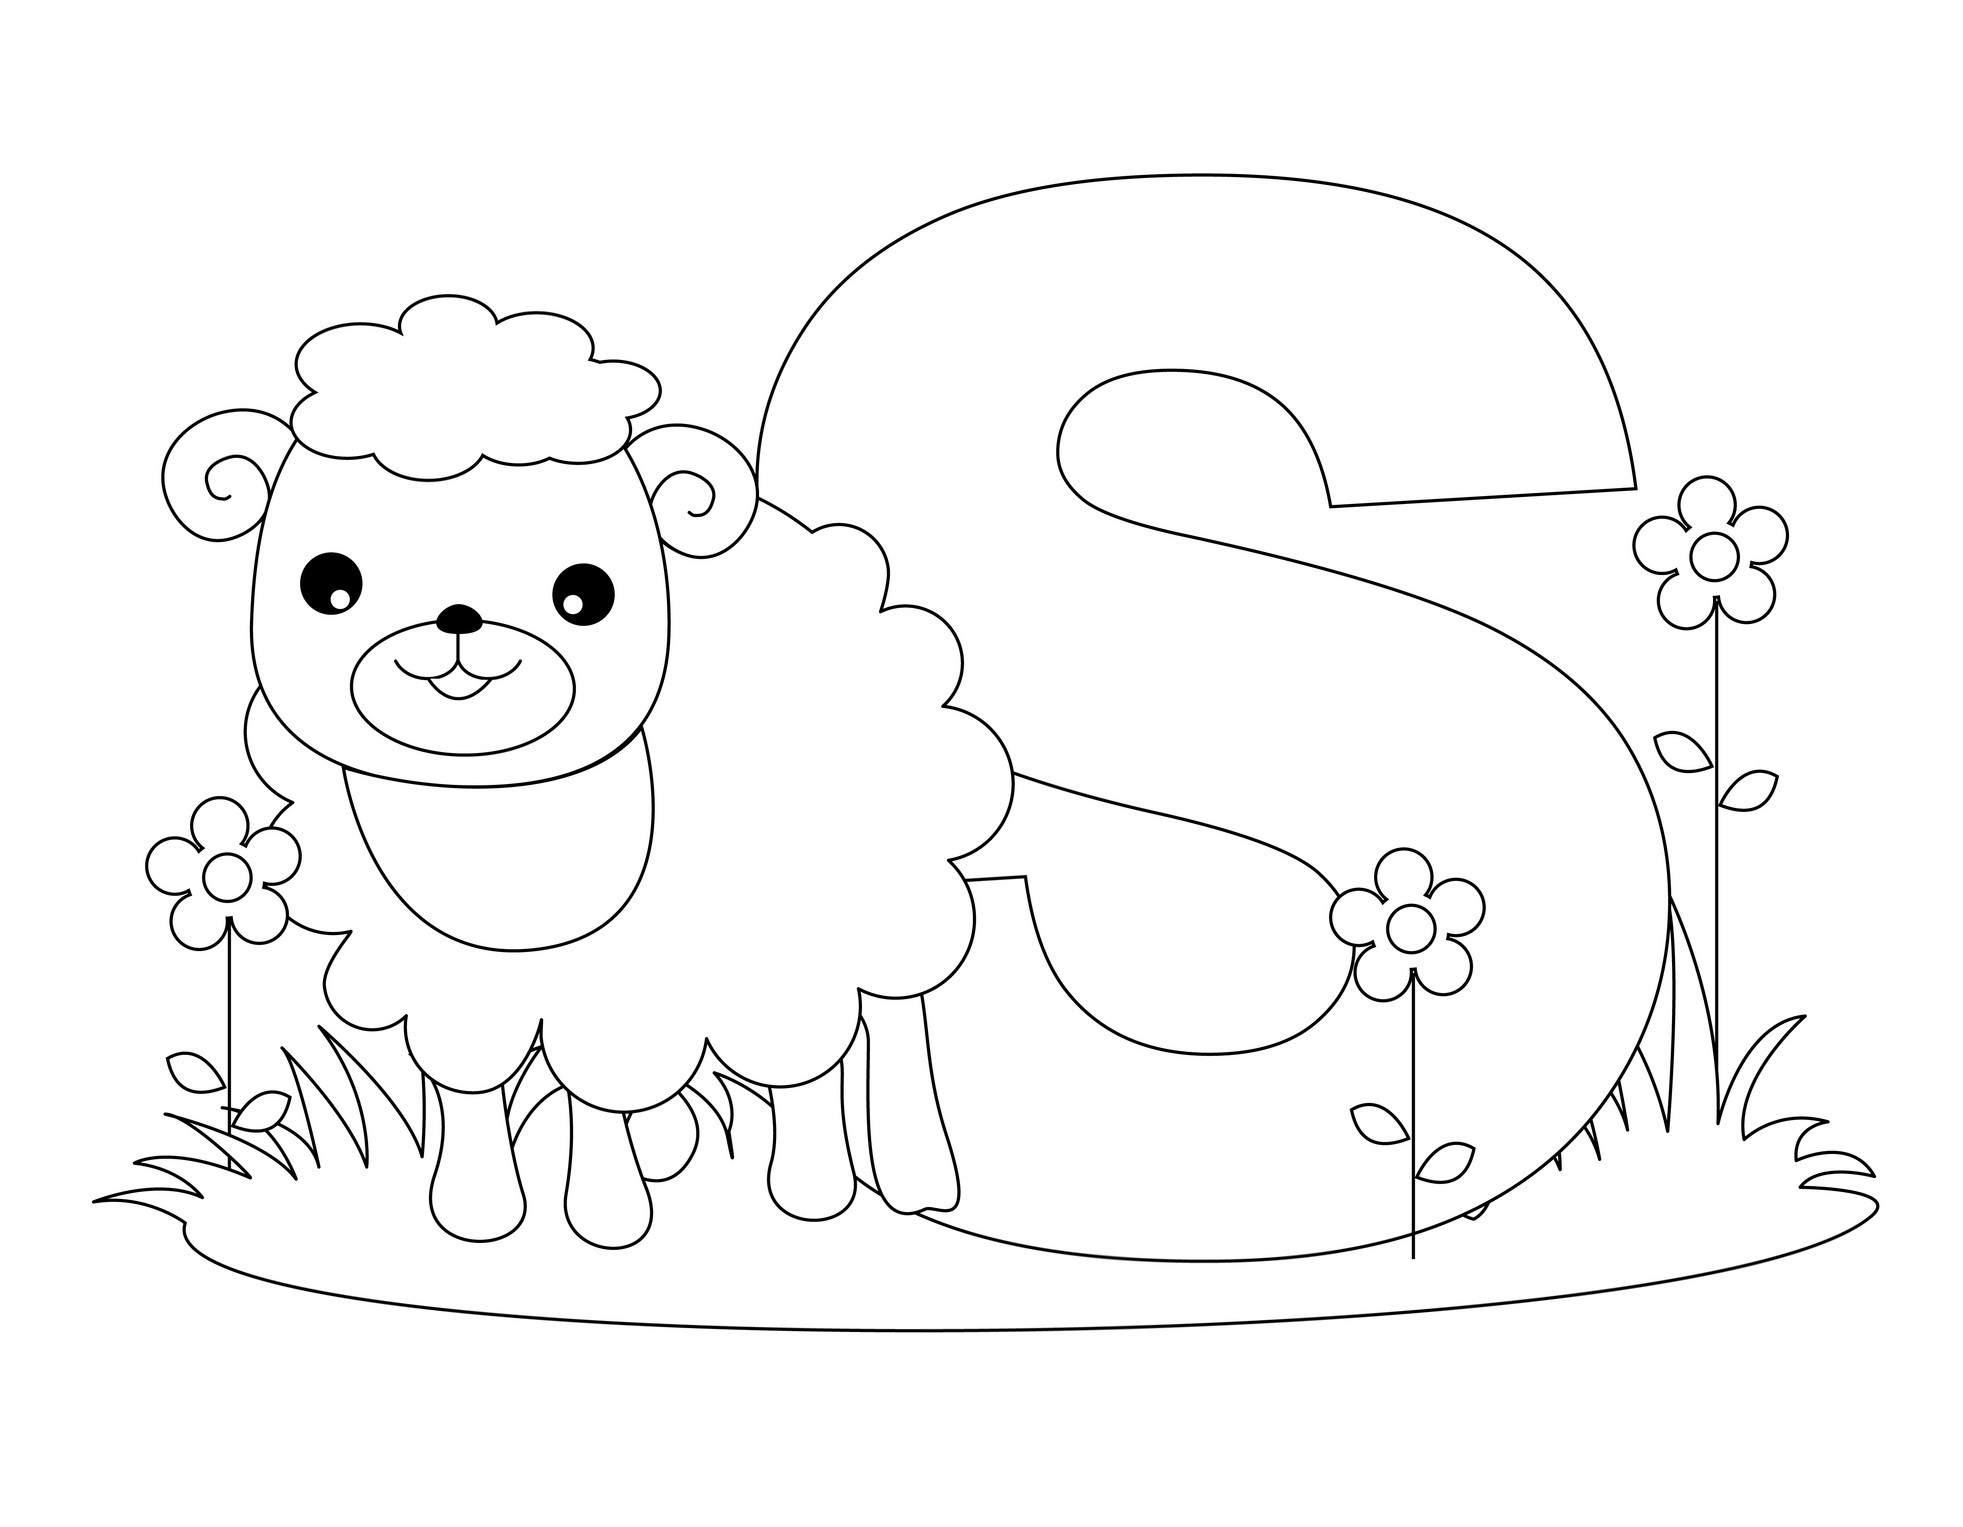 Colored Coloring Pages For S Coloring Pages